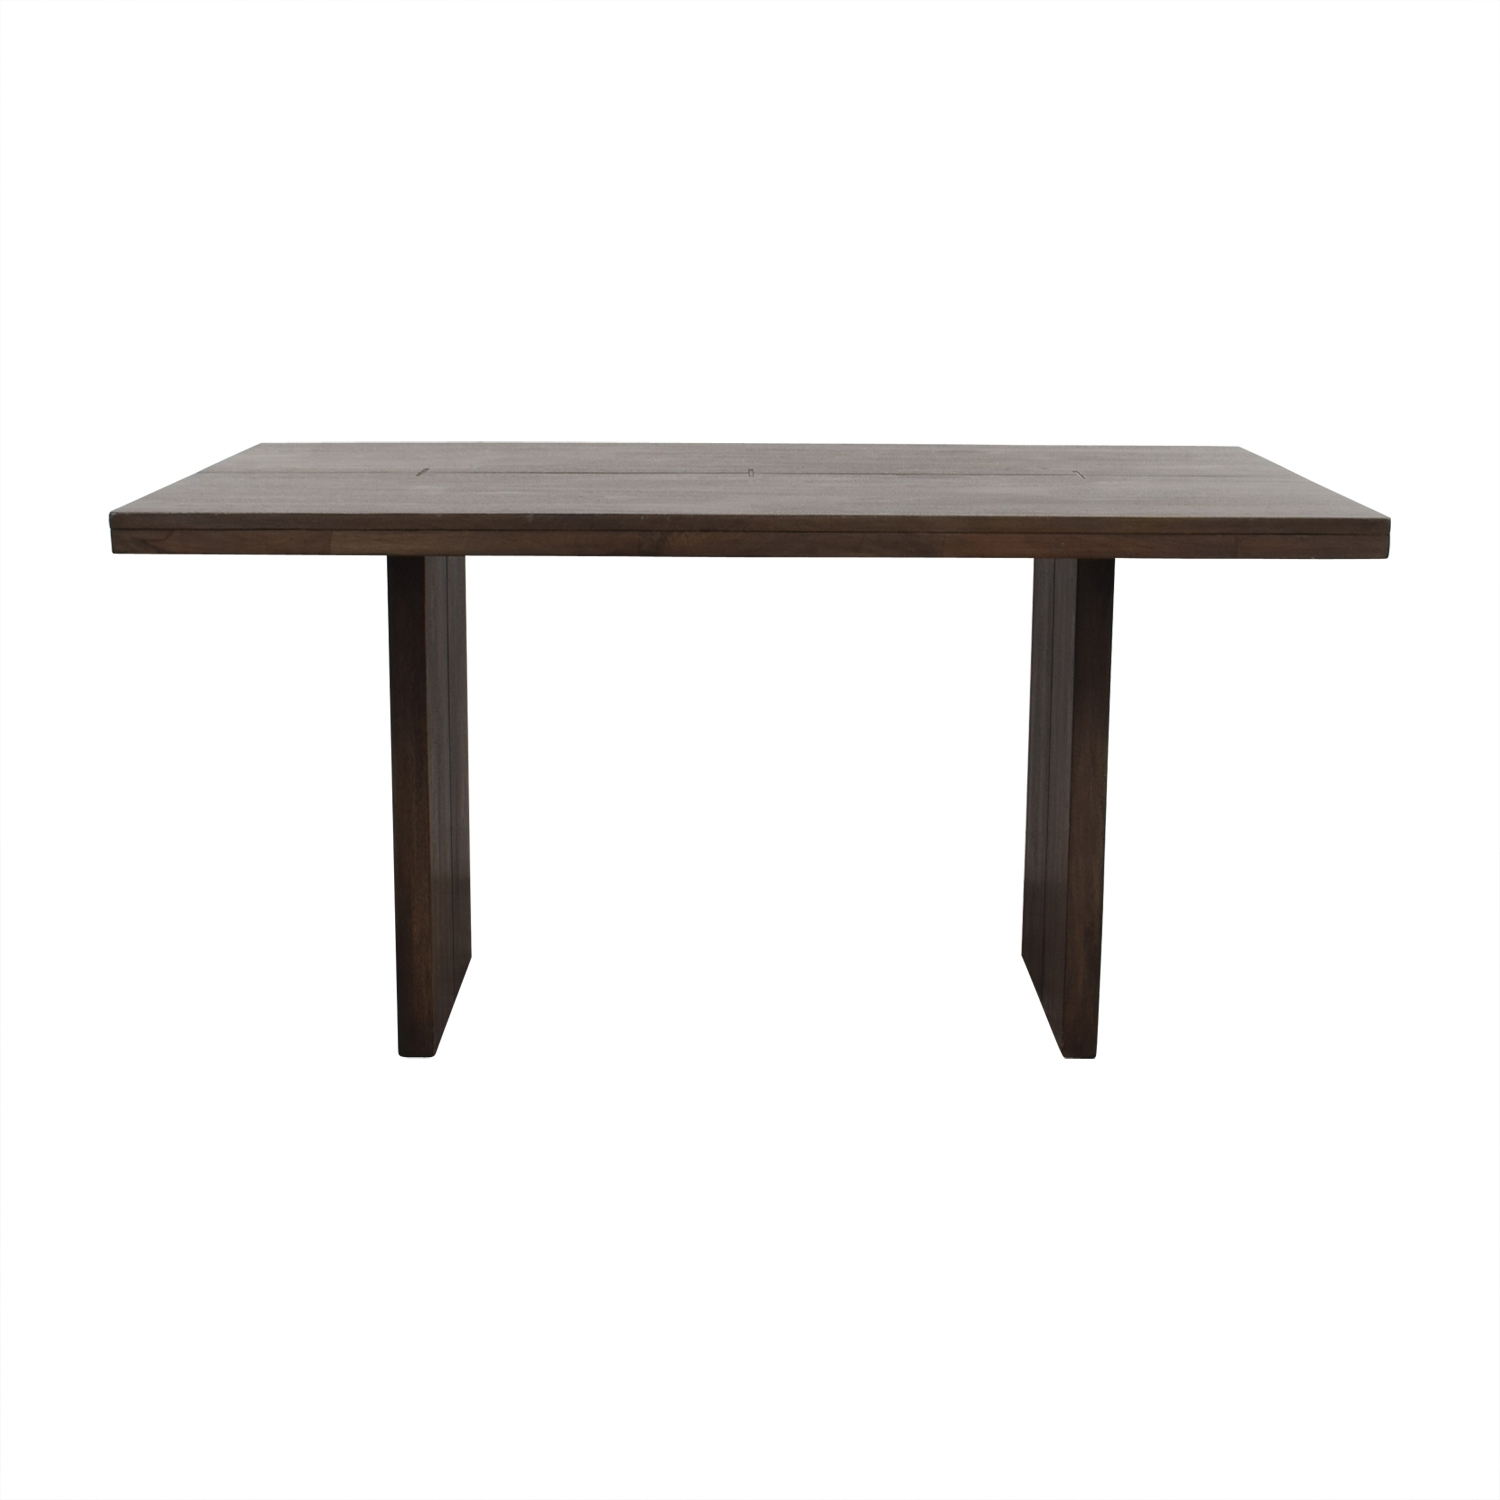 [%66% Off – West Elm West Elm Hayden Dining Table / Tables Inside Best And Newest Hayden Dining Tables|Hayden Dining Tables Within Best And Newest 66% Off – West Elm West Elm Hayden Dining Table / Tables|Well Liked Hayden Dining Tables With Regard To 66% Off – West Elm West Elm Hayden Dining Table / Tables|Fashionable 66% Off – West Elm West Elm Hayden Dining Table / Tables With Hayden Dining Tables%] (View 1 of 25)